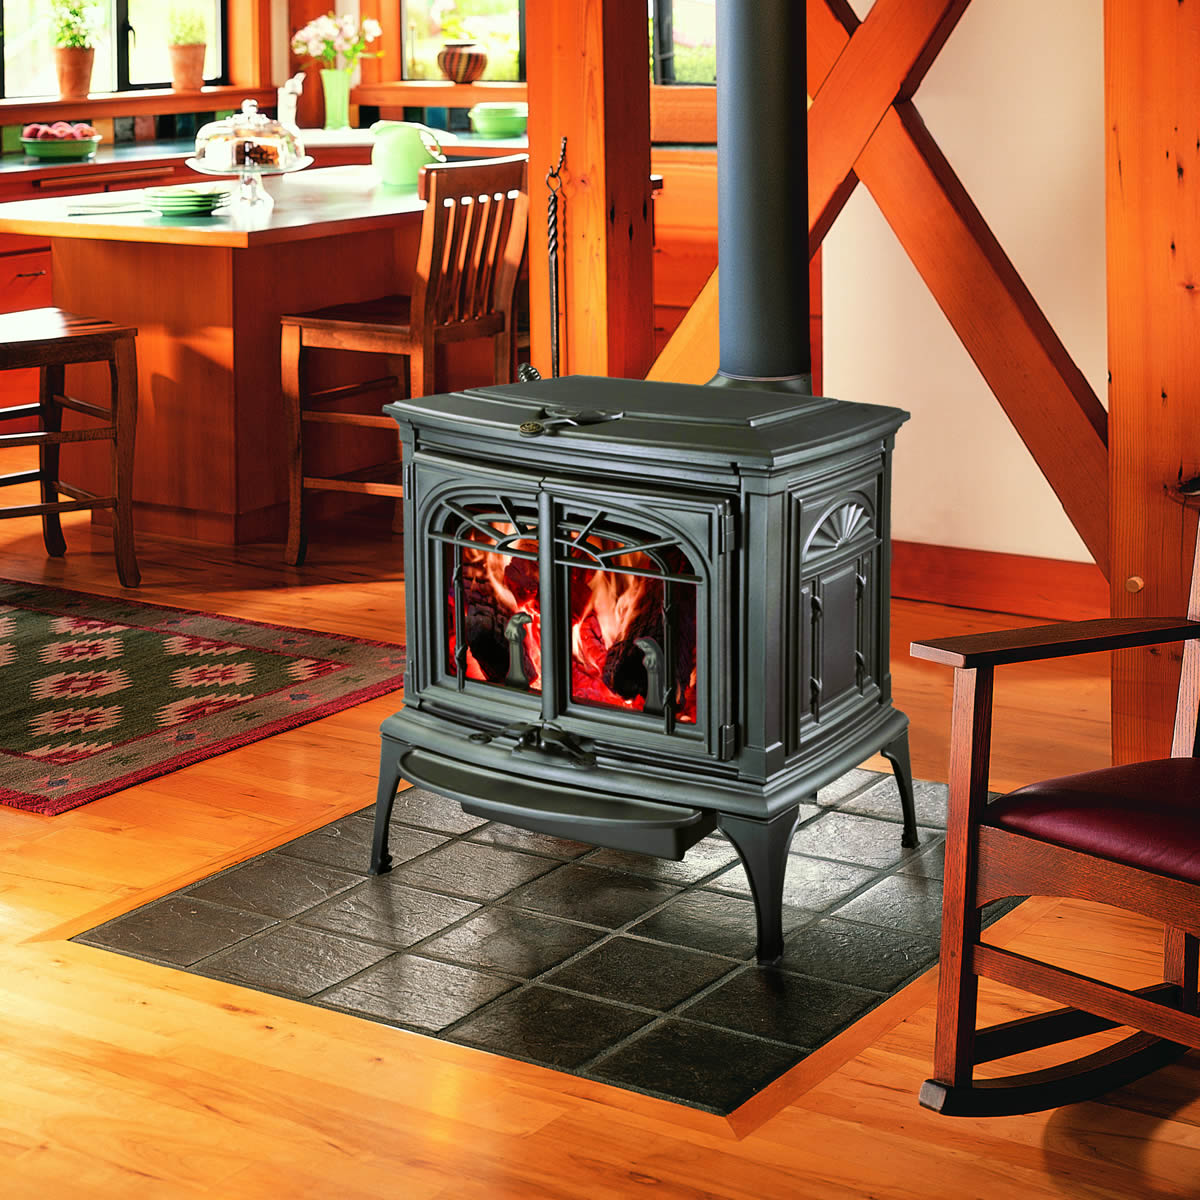 - Hot Tubs Fireplaces Big Green Egg - Fireplaces By Roye